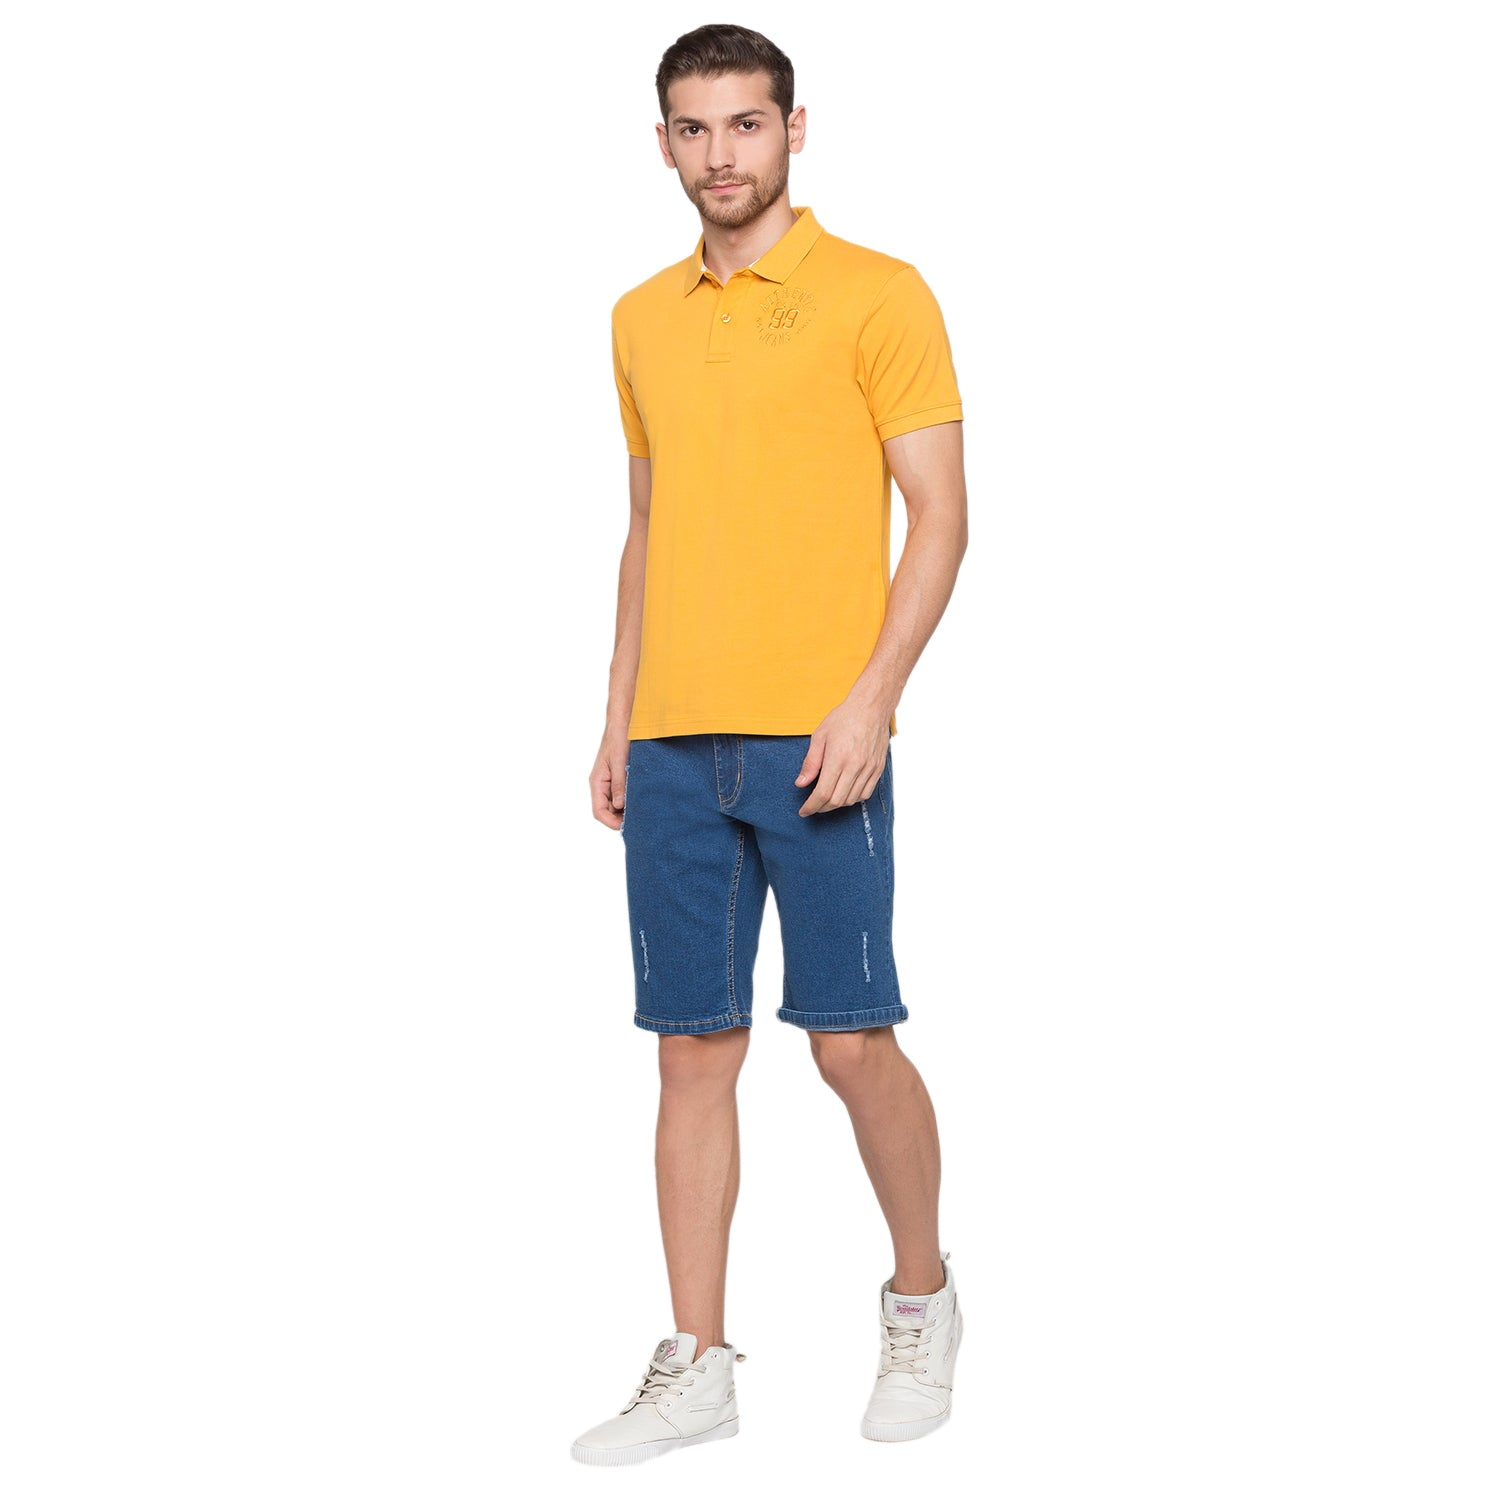 Globus Mustard Solid Polo T-Shirt4